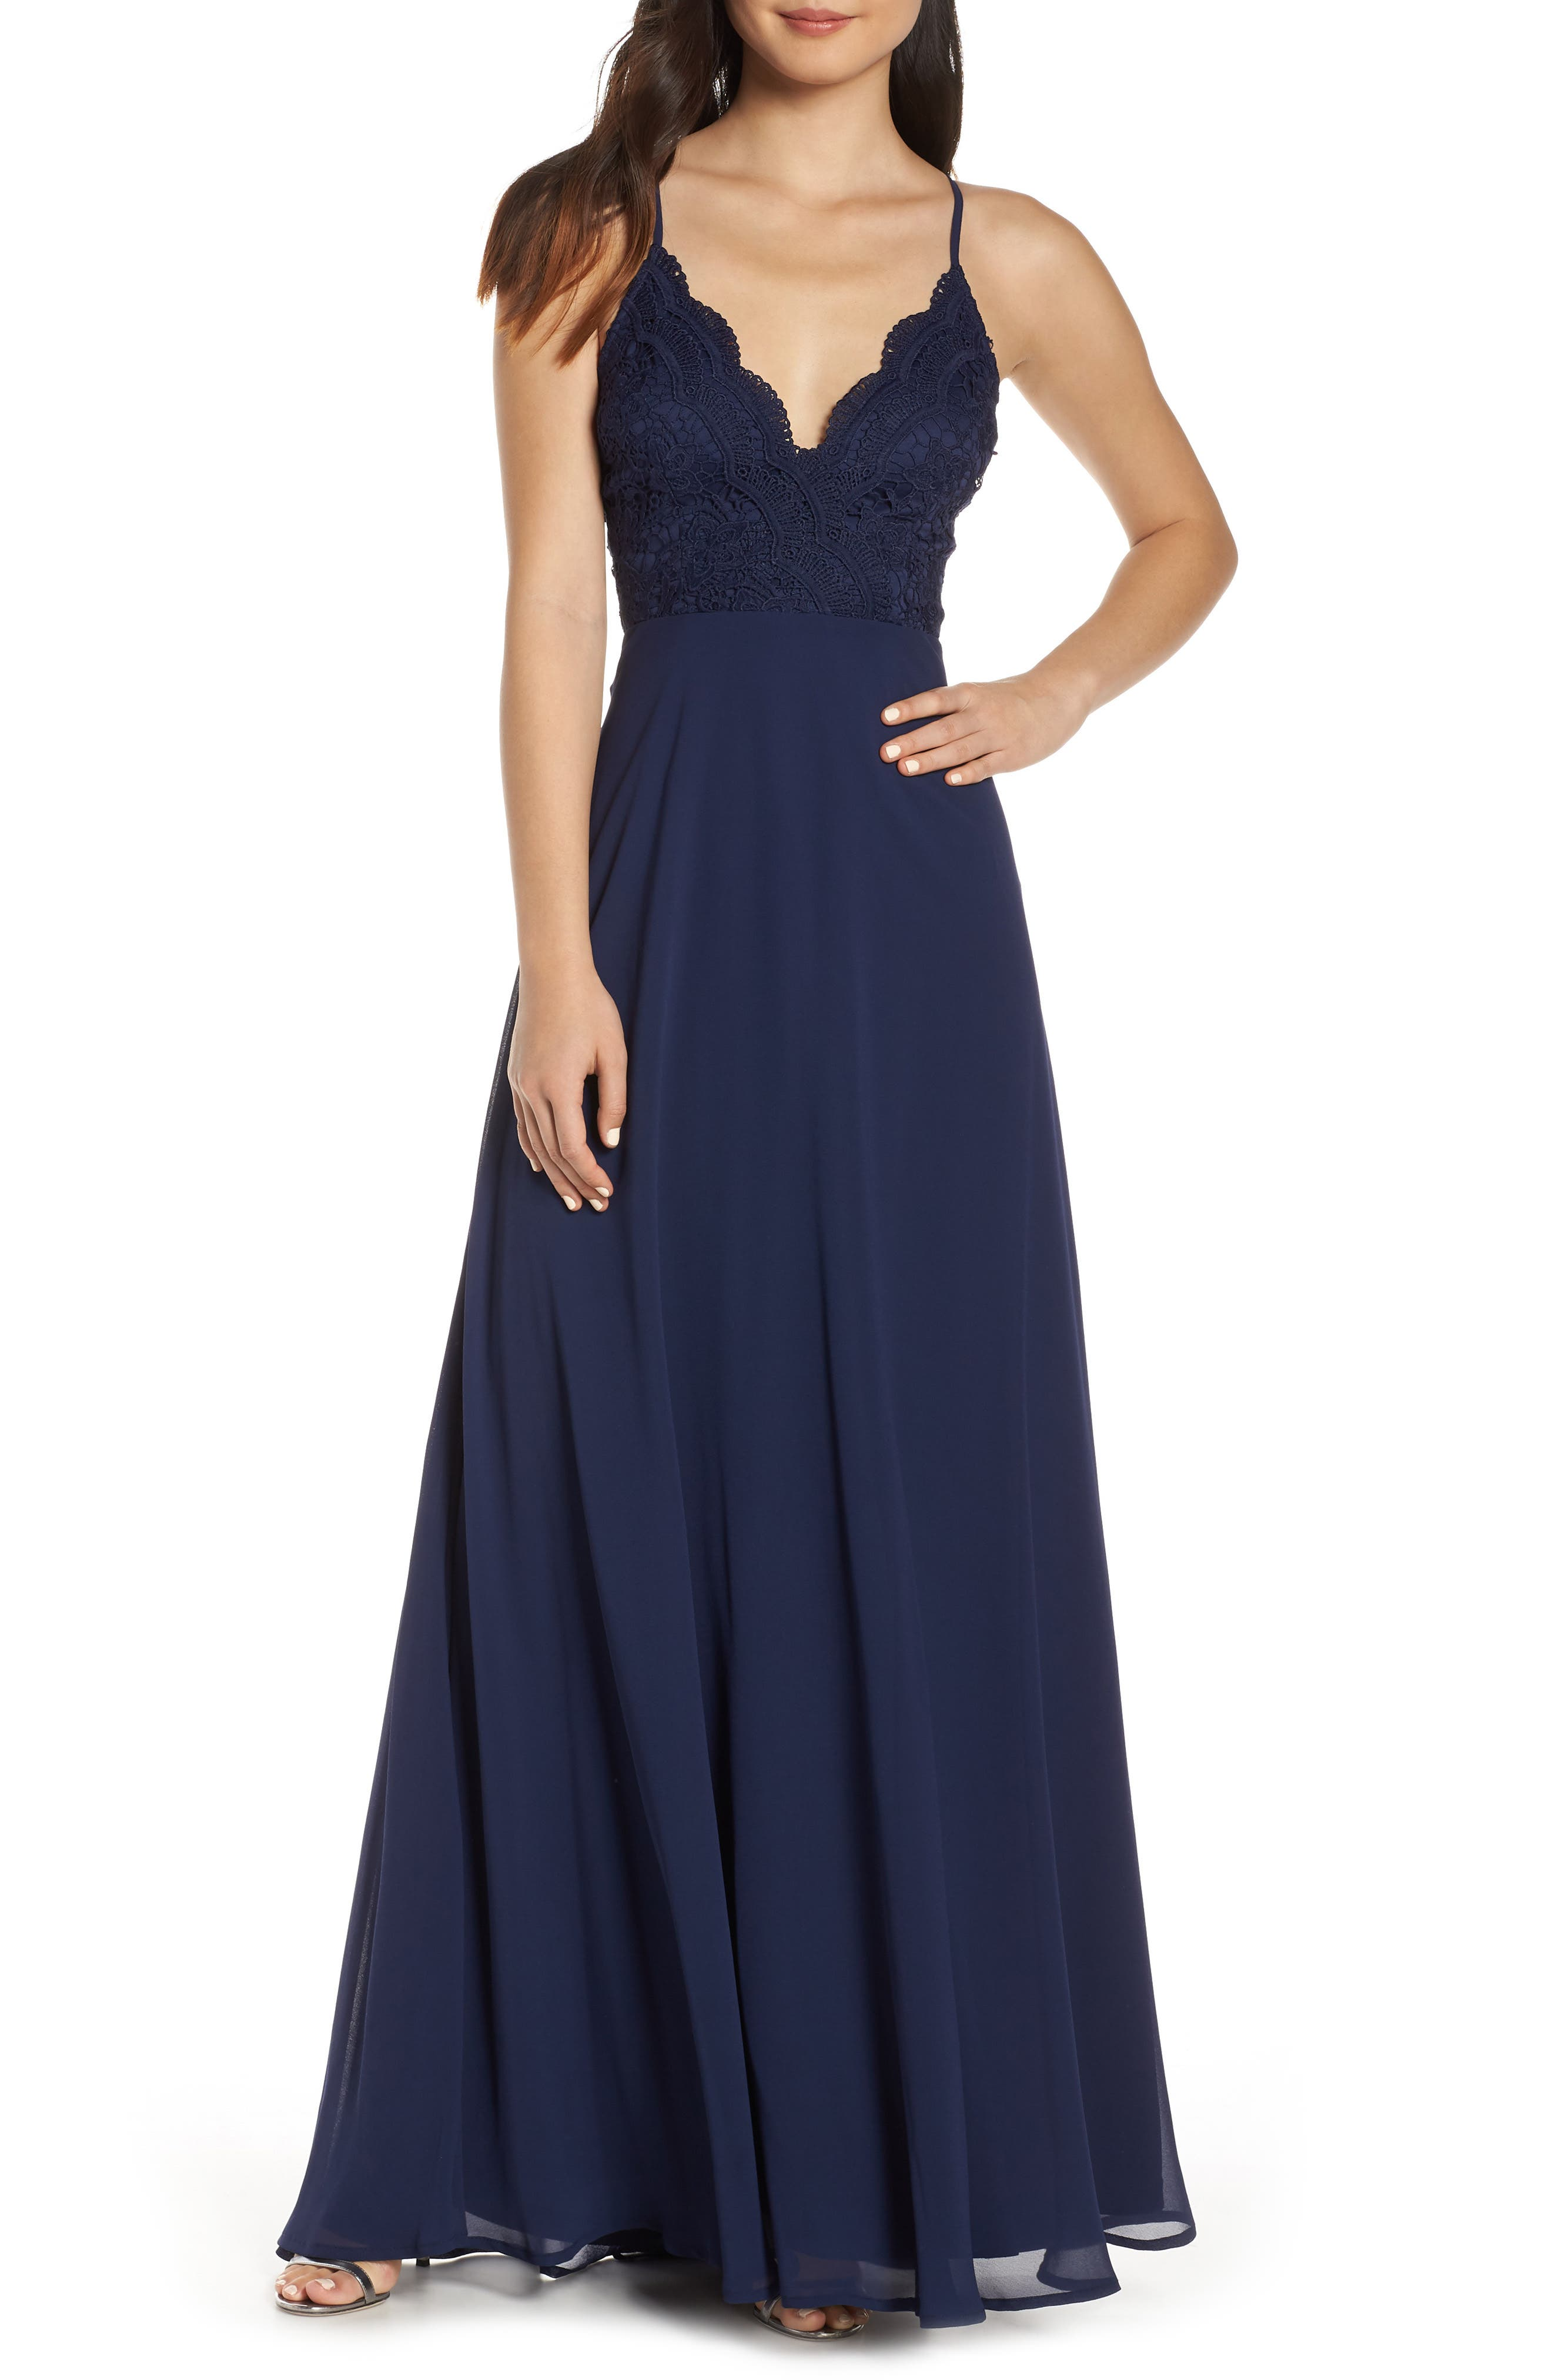 Lulus Madalyn V-Neck Lace & Chiffon Evening Dress, Blue